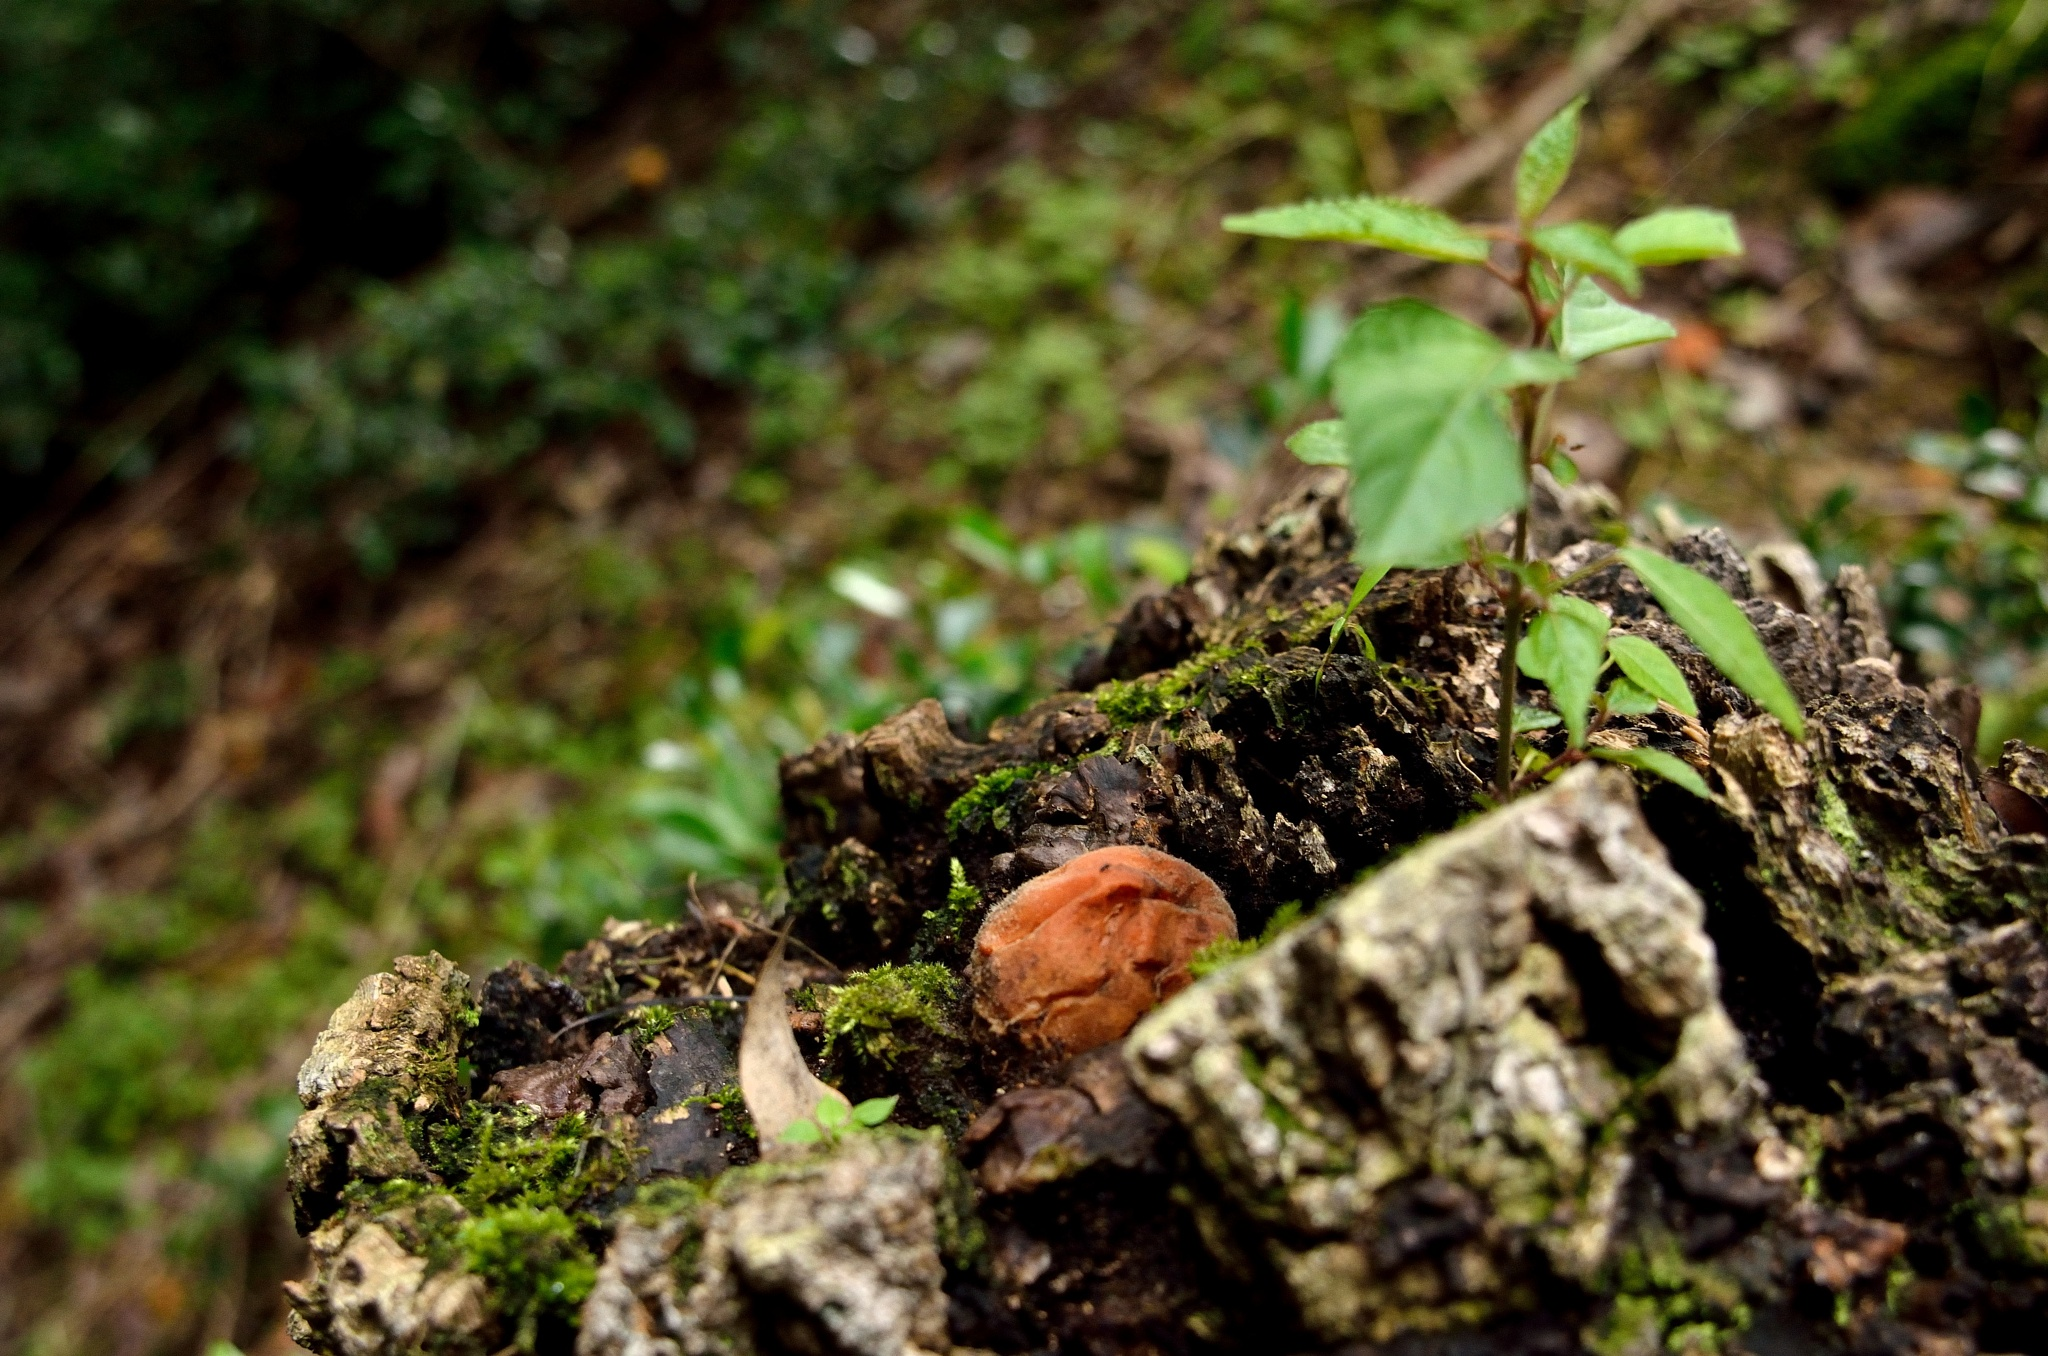 Stump and the plum of the real by Hiroaki Hattori